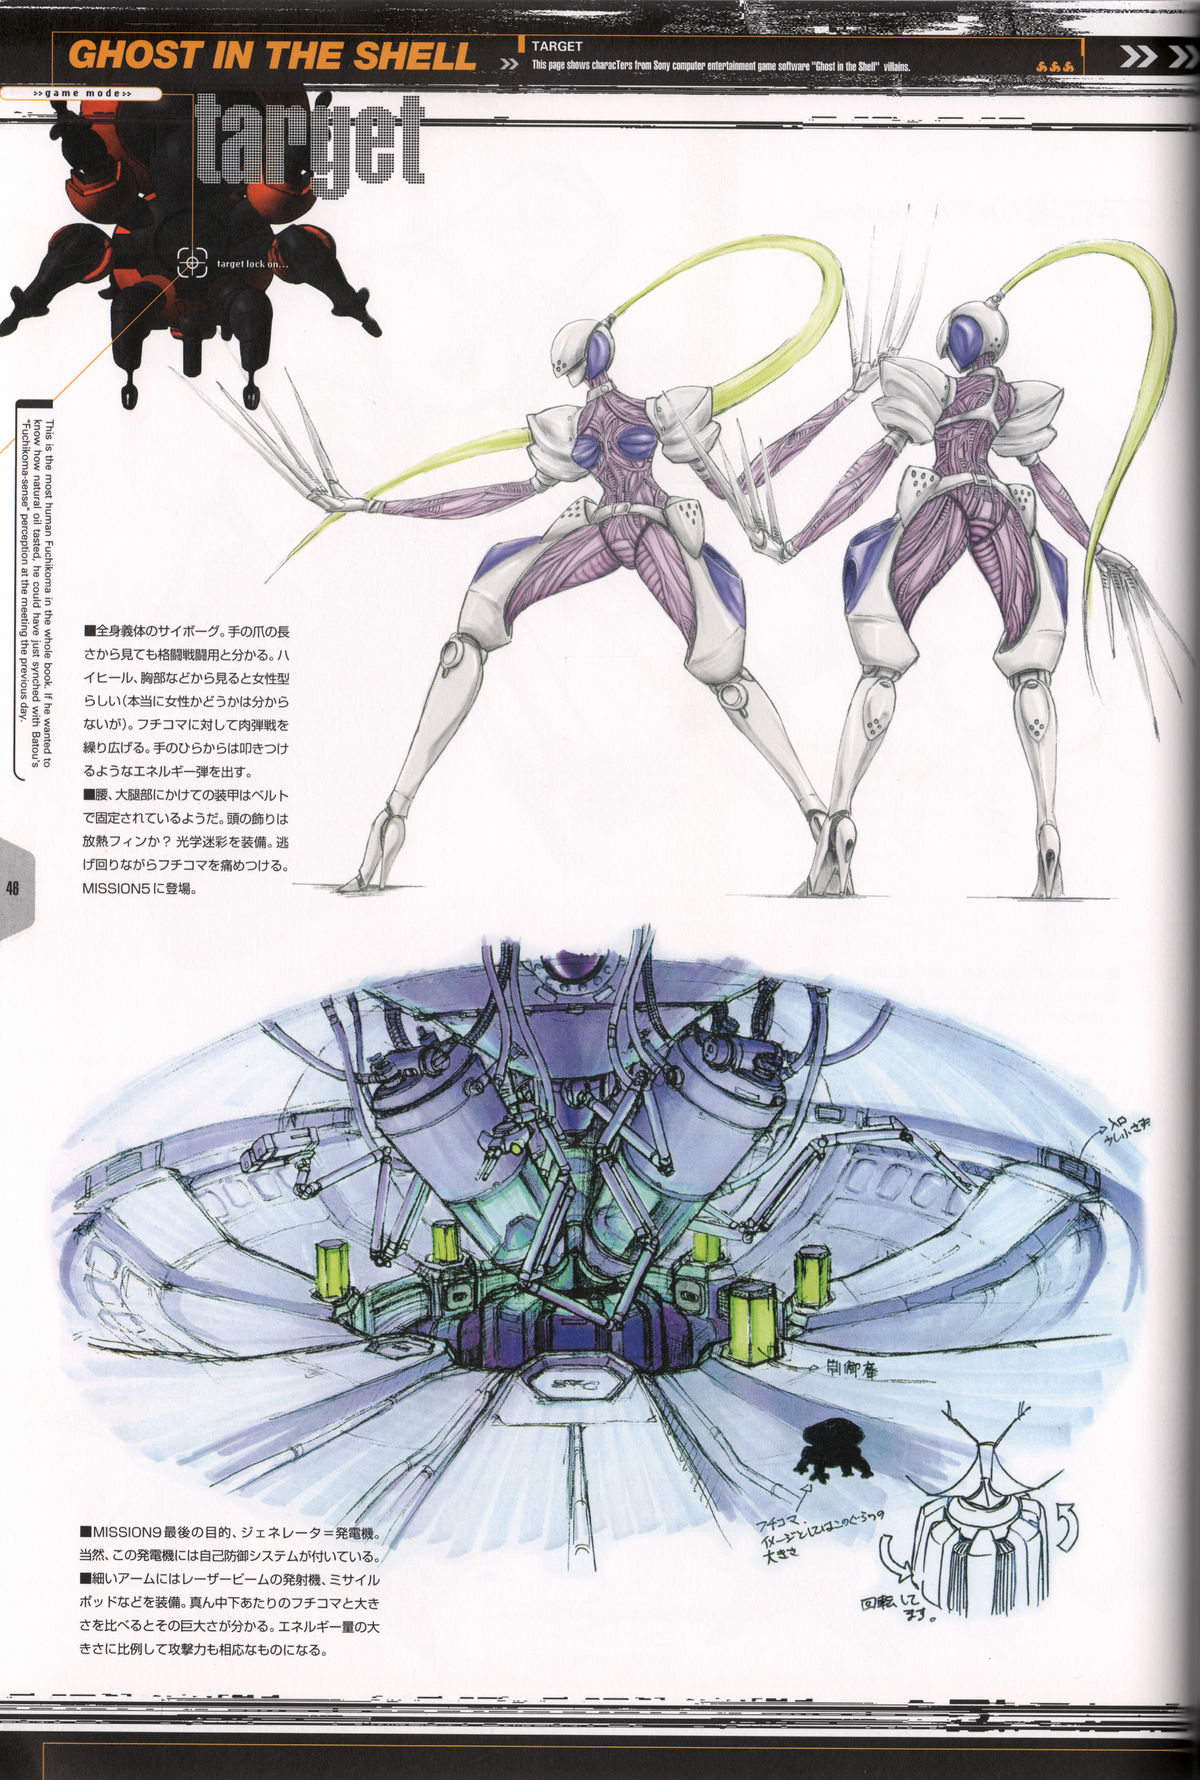 Ghost_in_the_Shell_Official_Art_Book_PSOne_Version_46